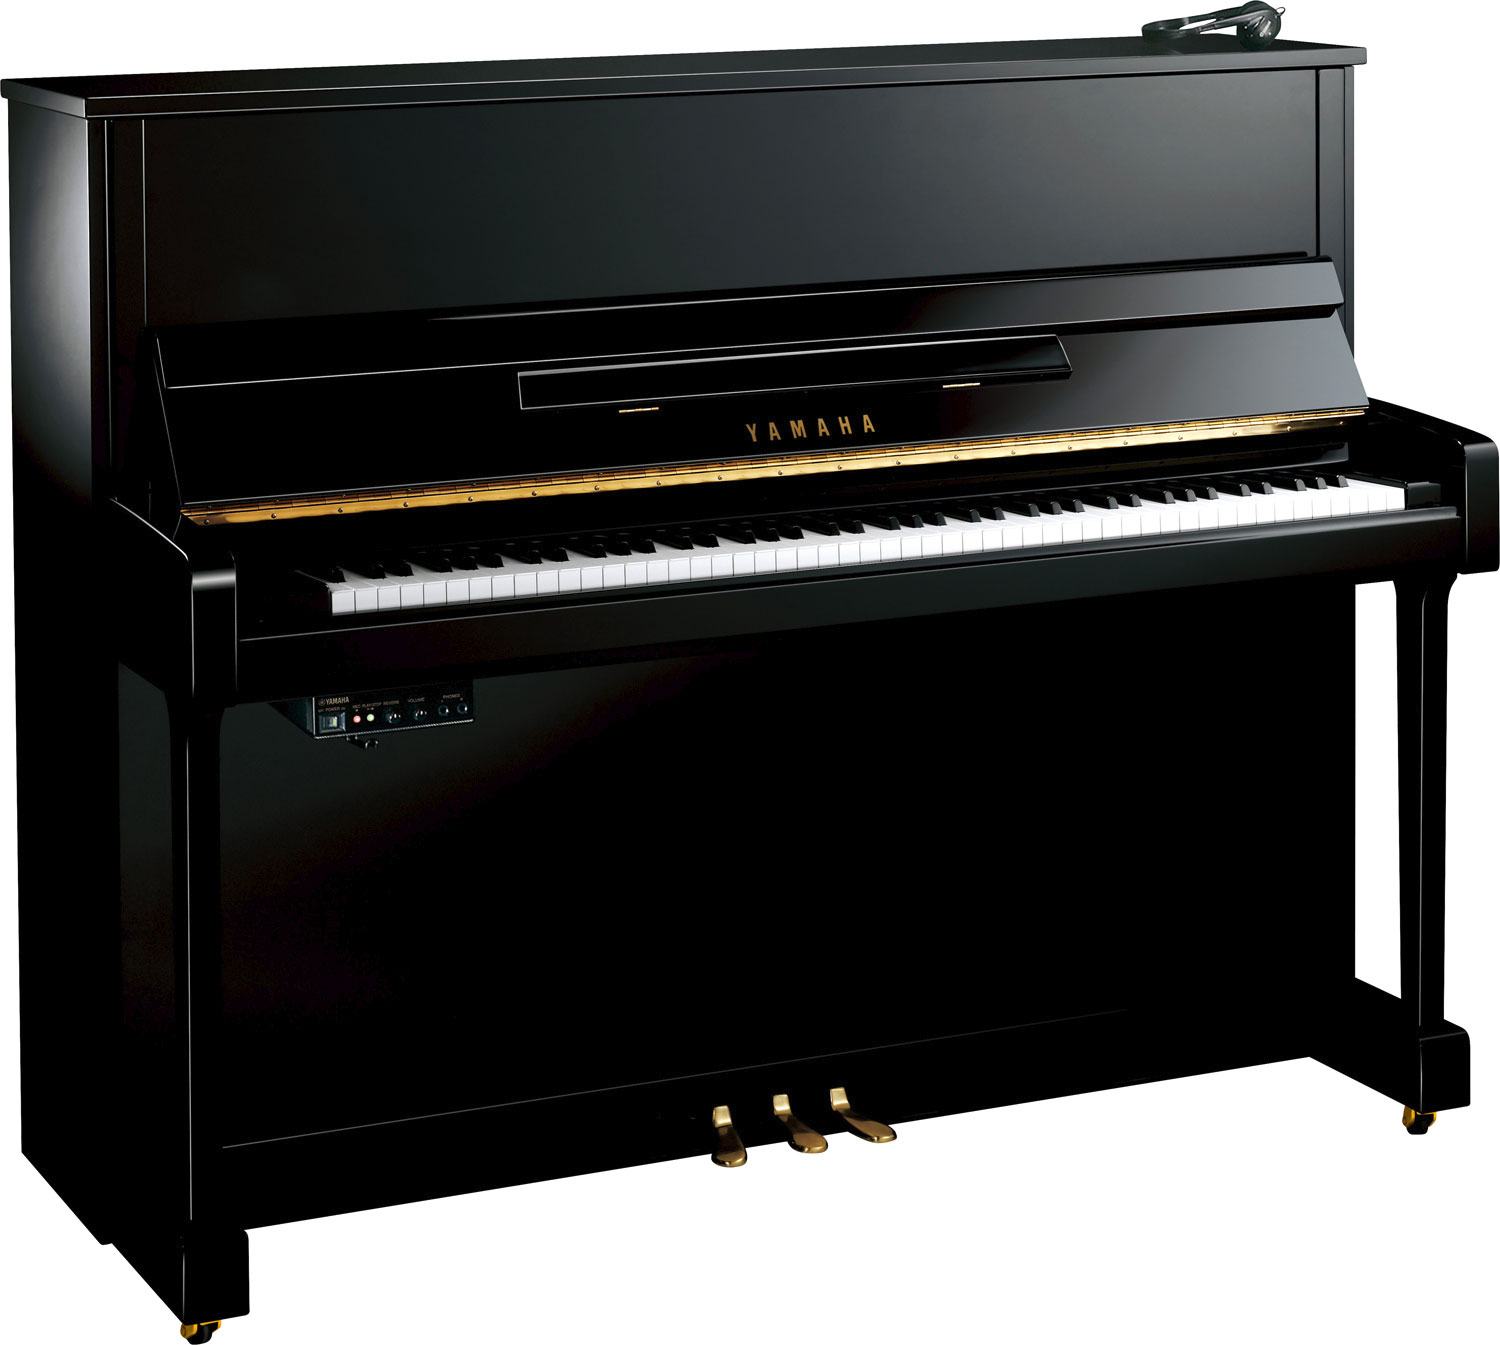 Phoenix piano event rental Boston upright piano